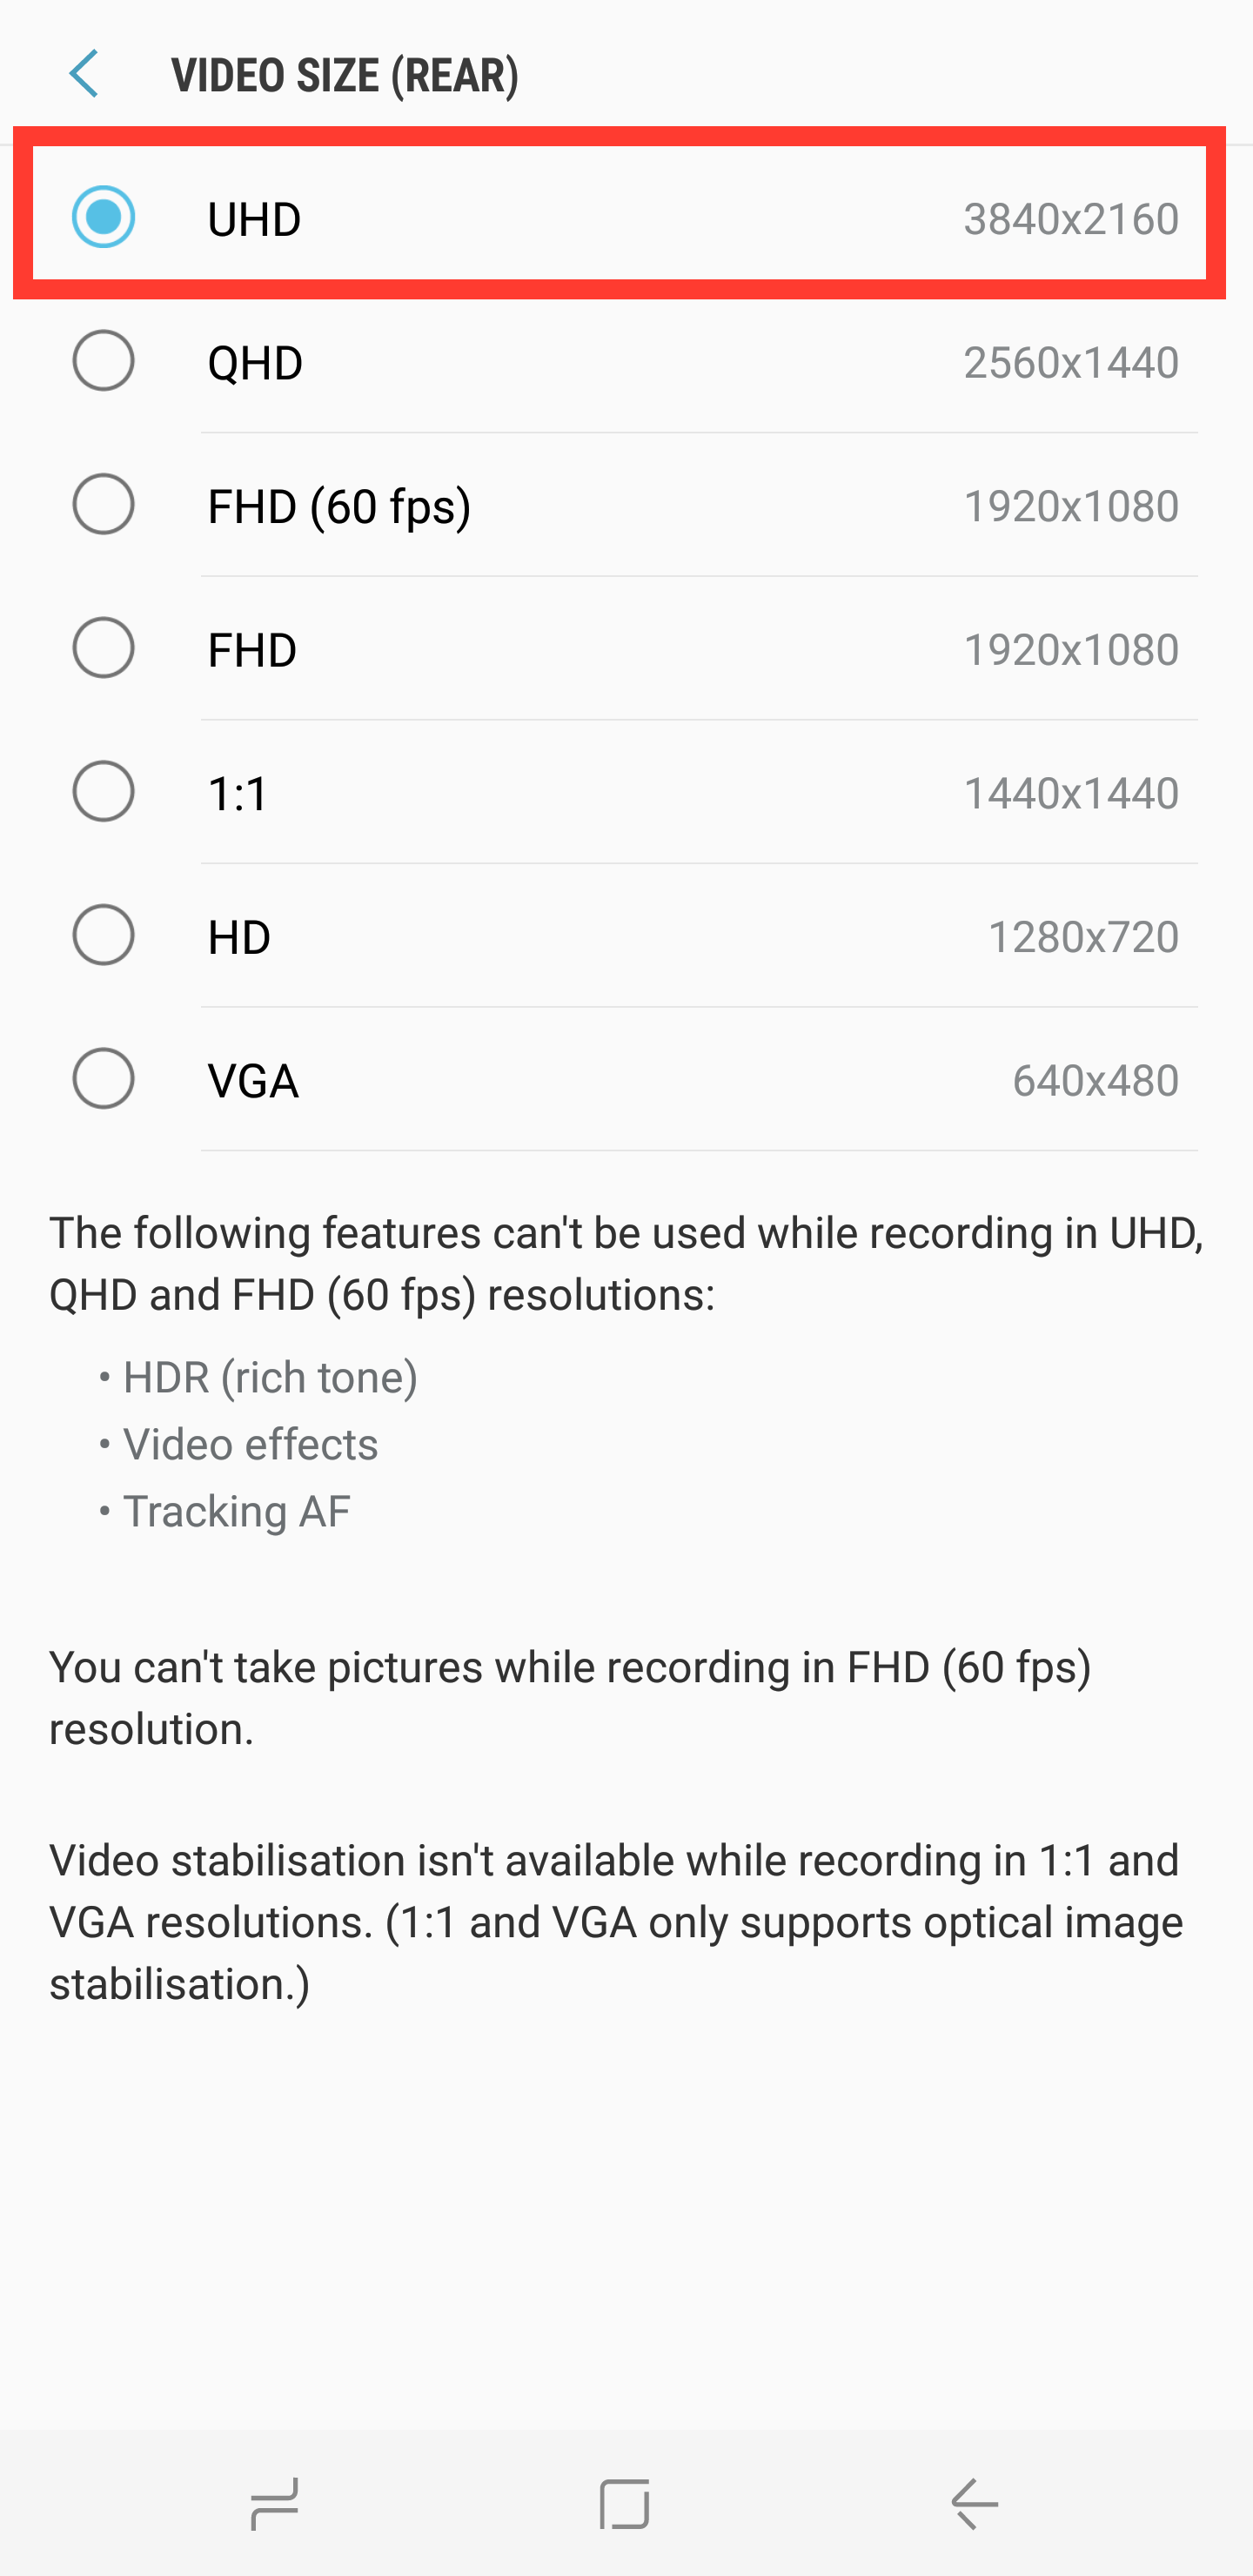 Galaxy S8 Tip: How to shoot 4K video - SamMobile - SamMobile